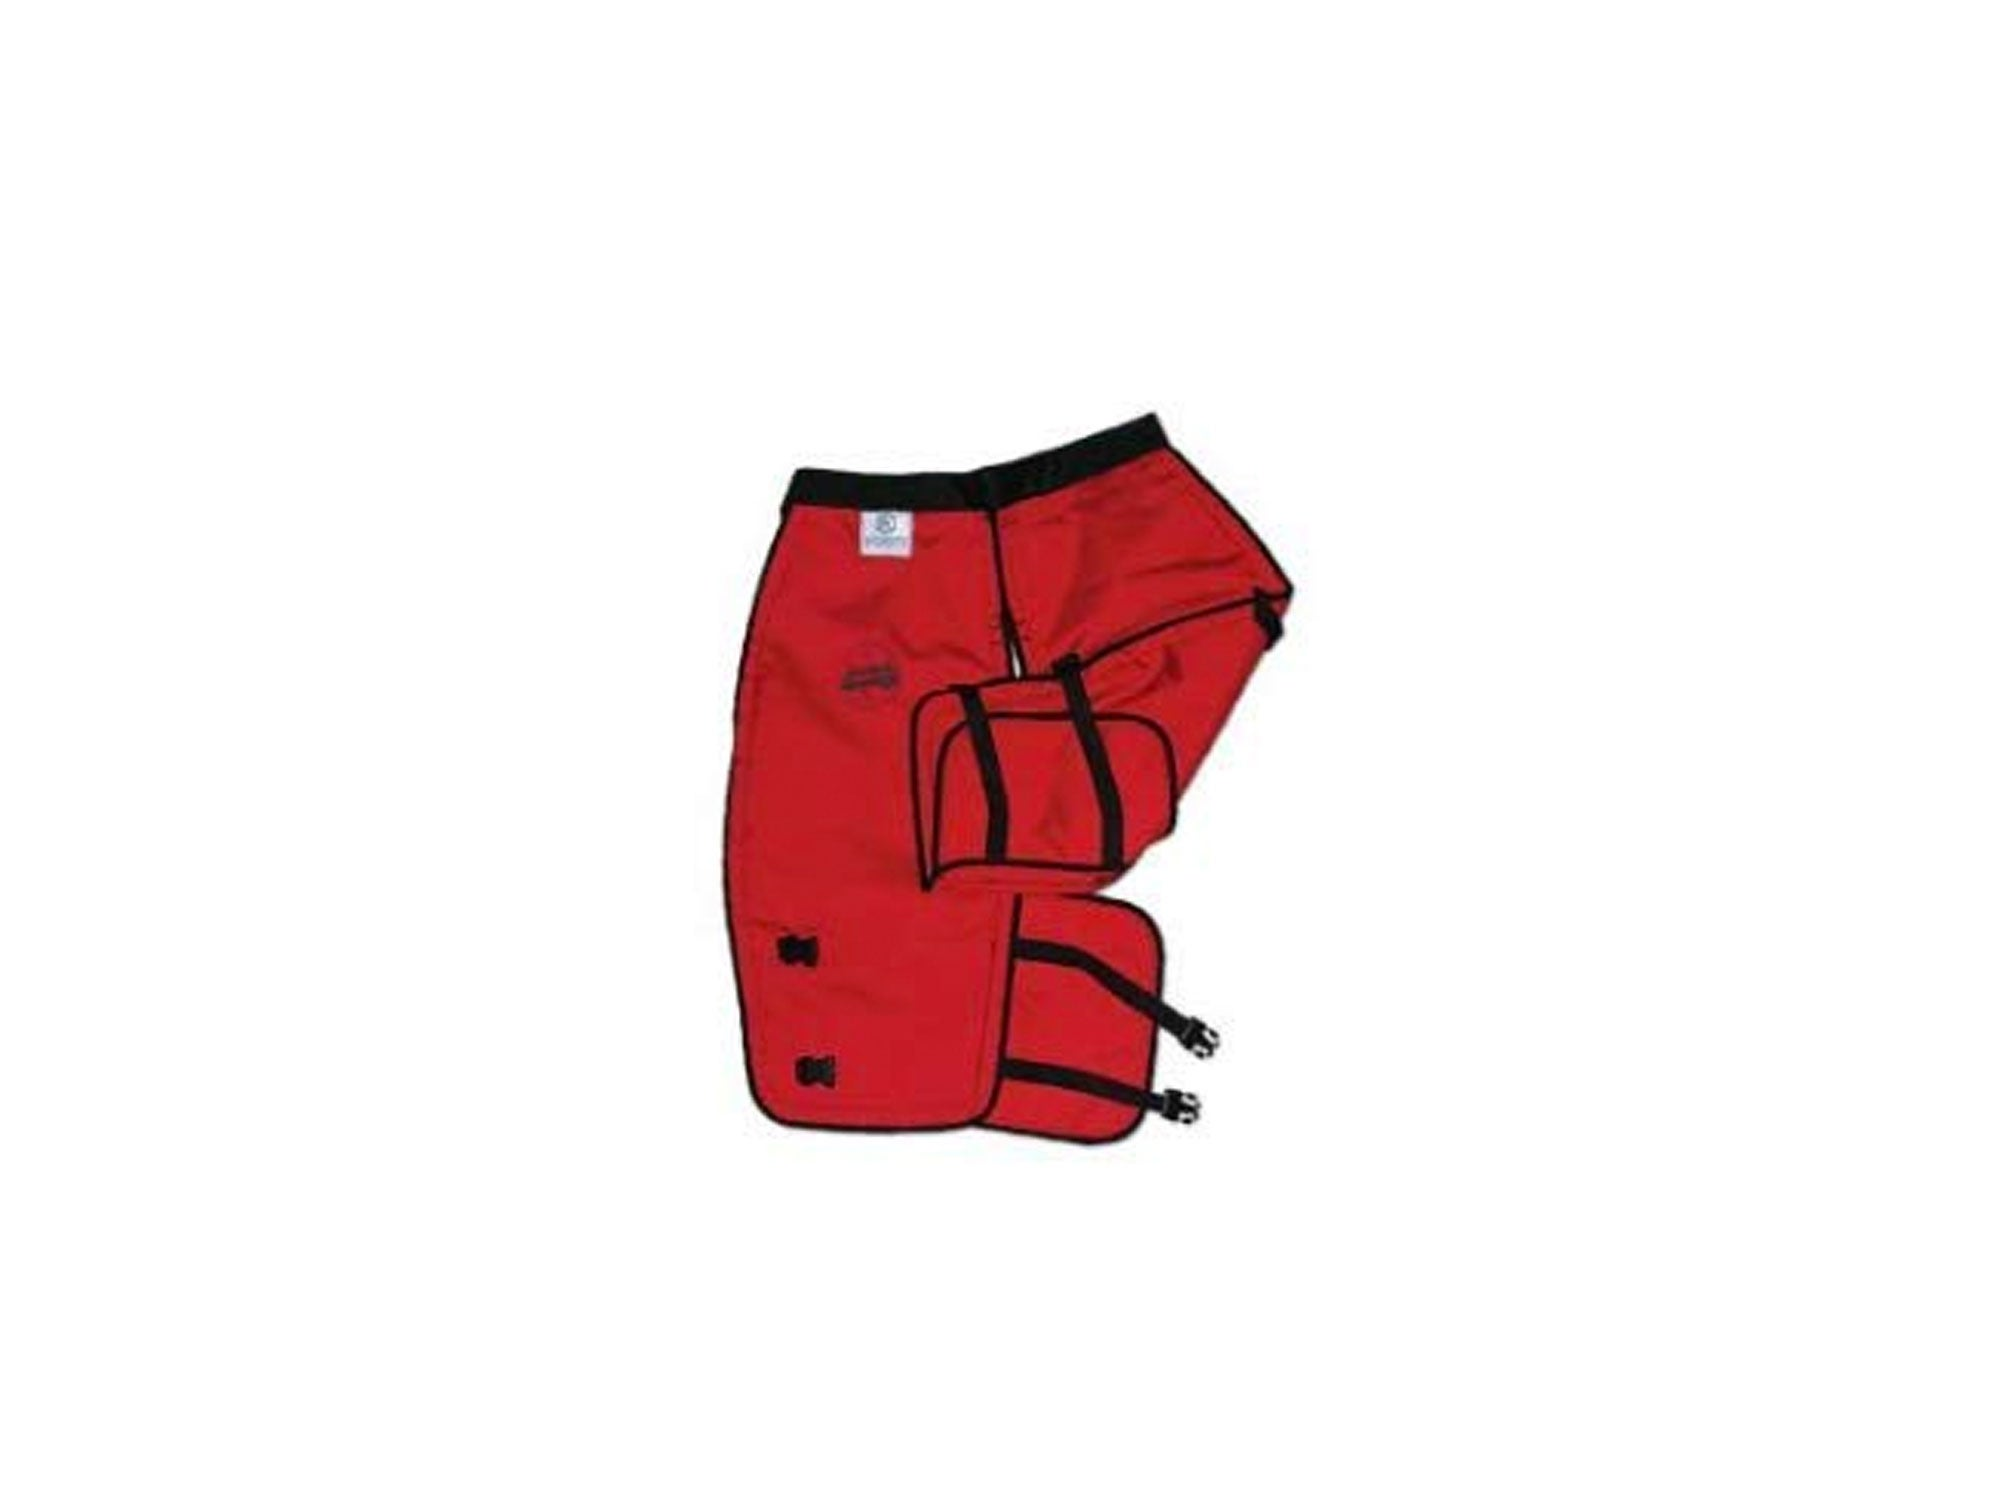 Red chainsaw chaps by Labonville